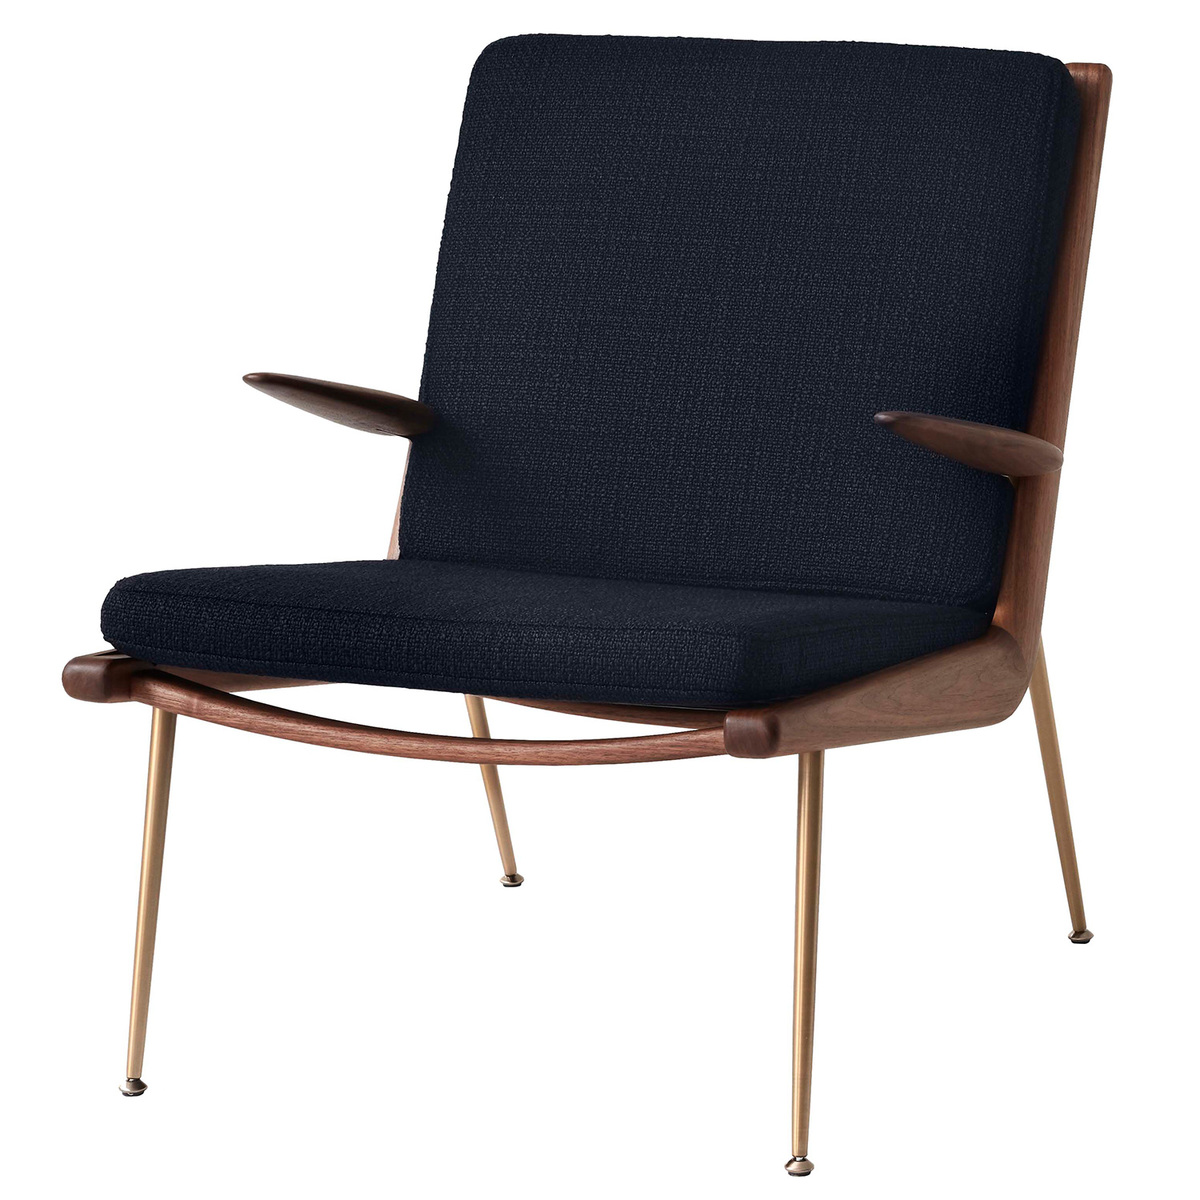 &Tradition Boomerang HM2 lounge chair, Loop Marine - oiled walnut from &Tradition